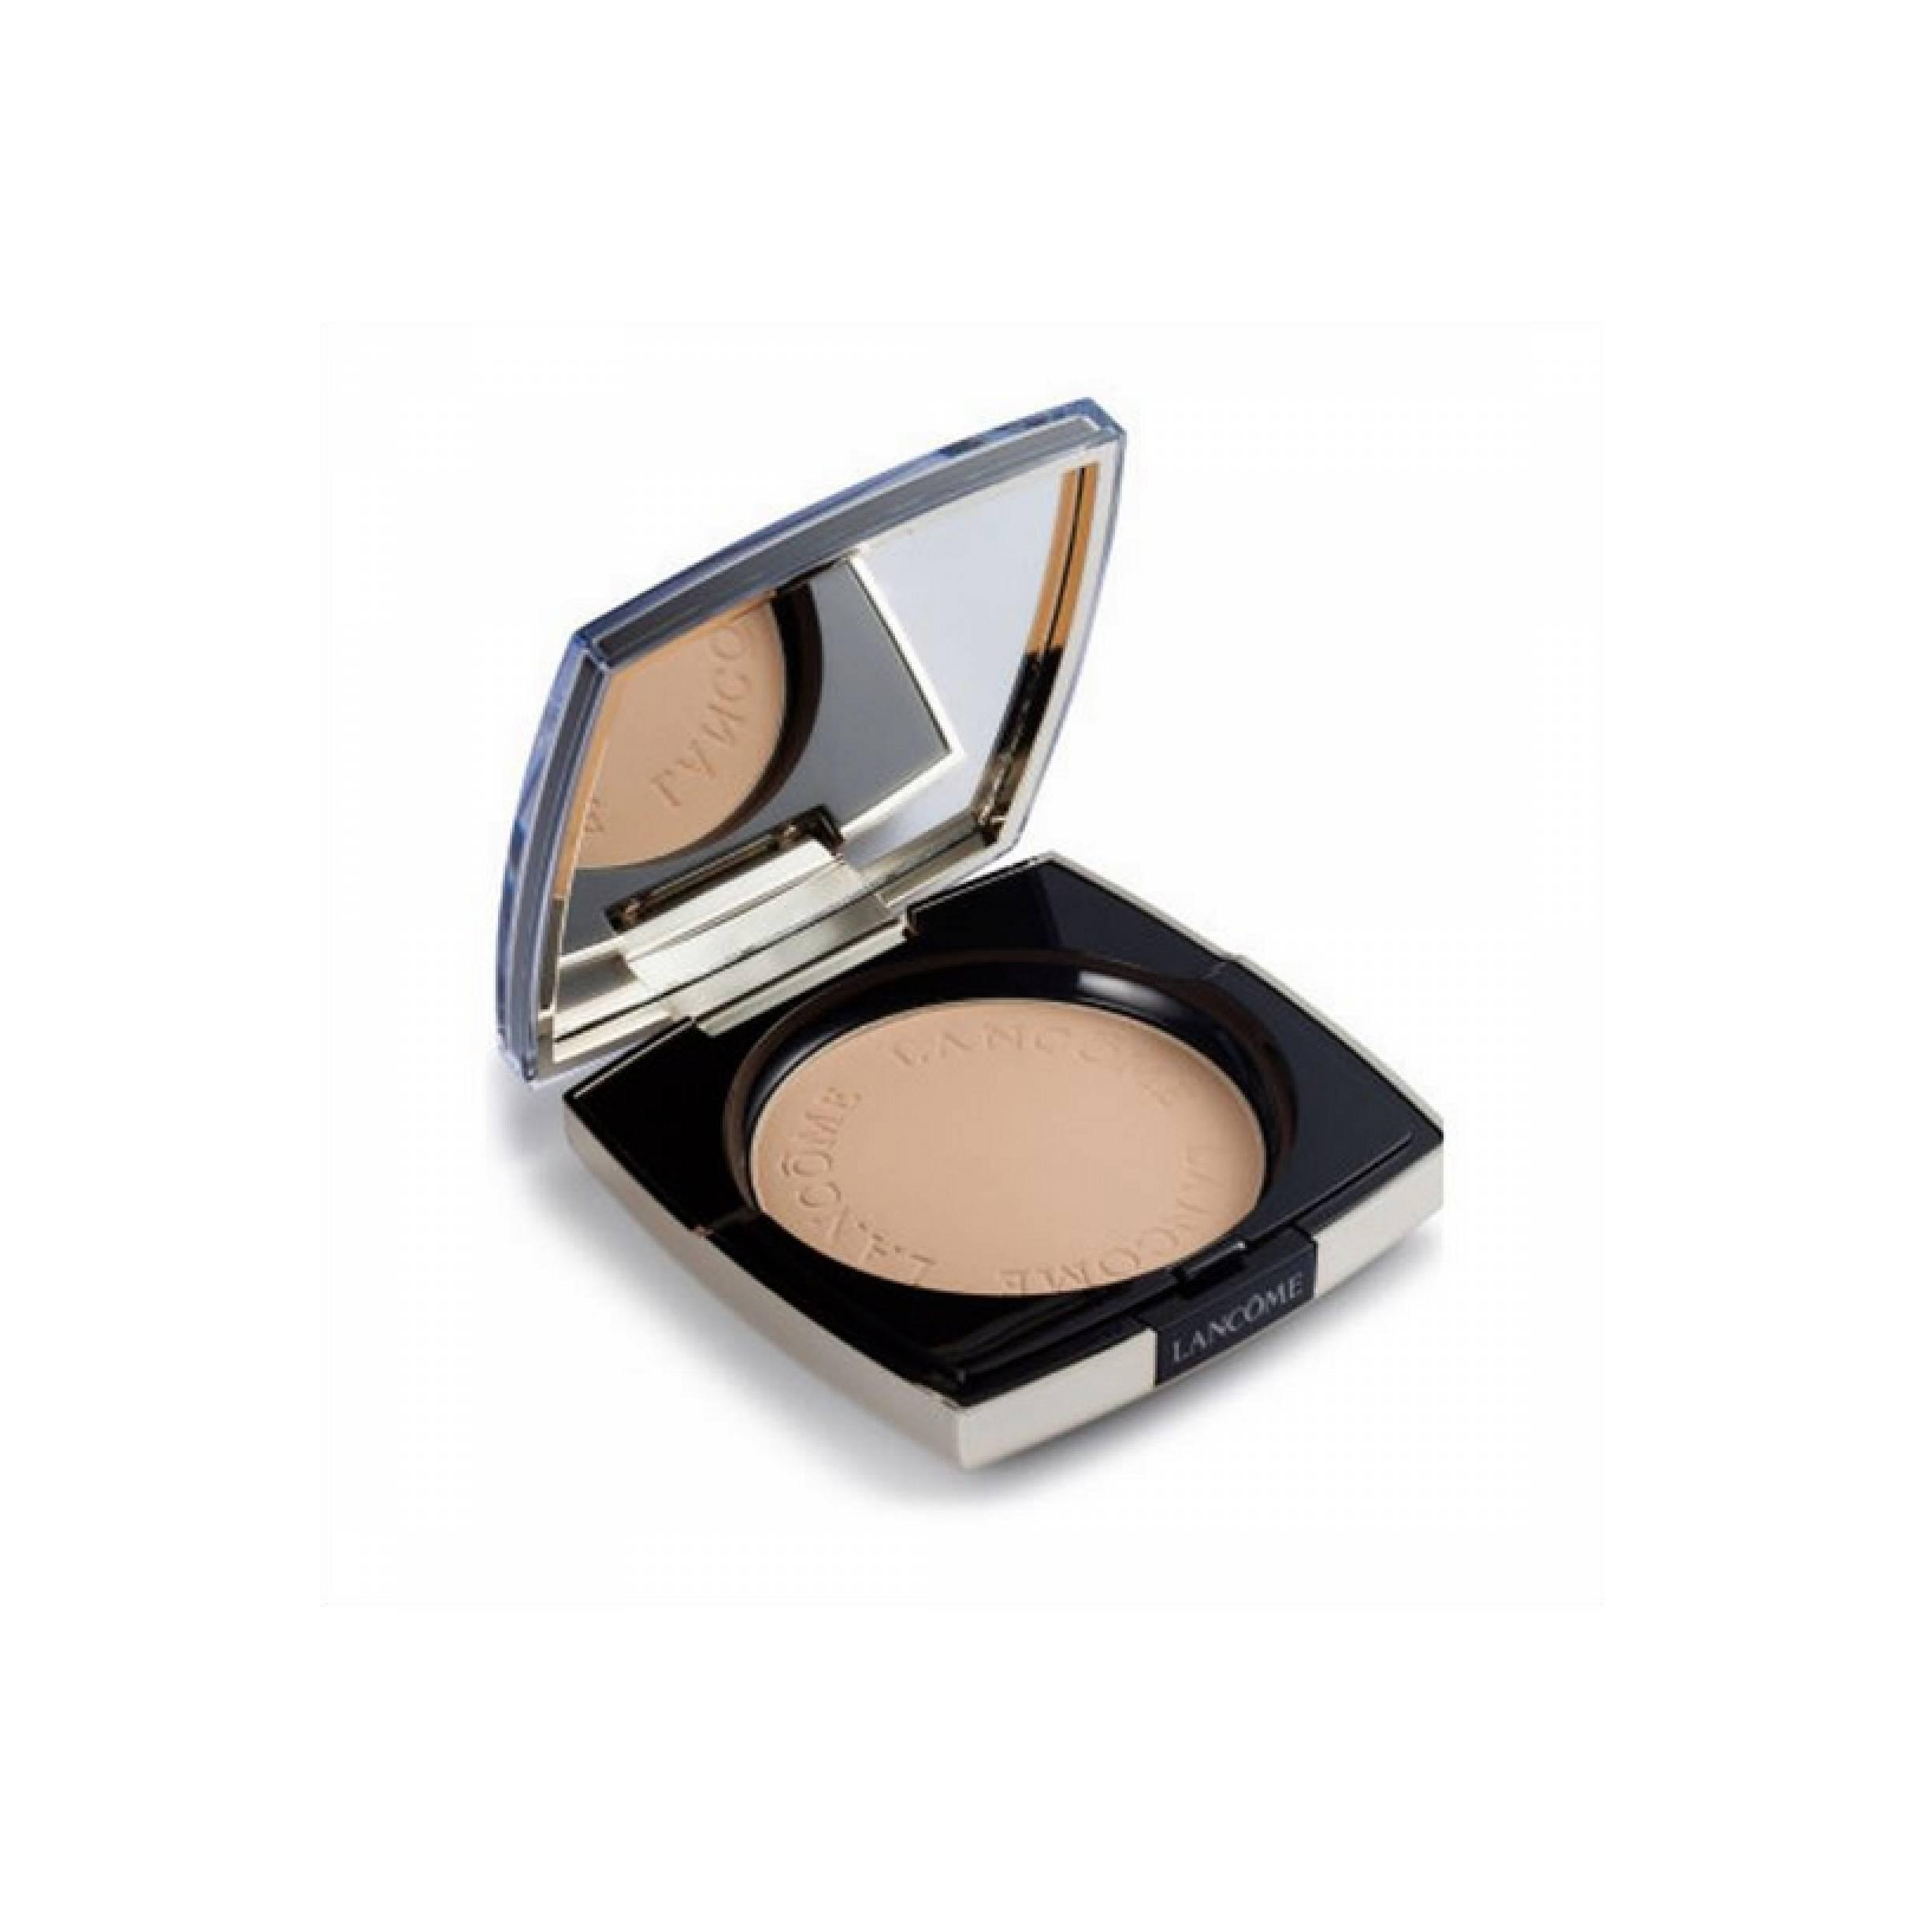 Lancome Absolue Compact Powder Foundation (CP 1.550)